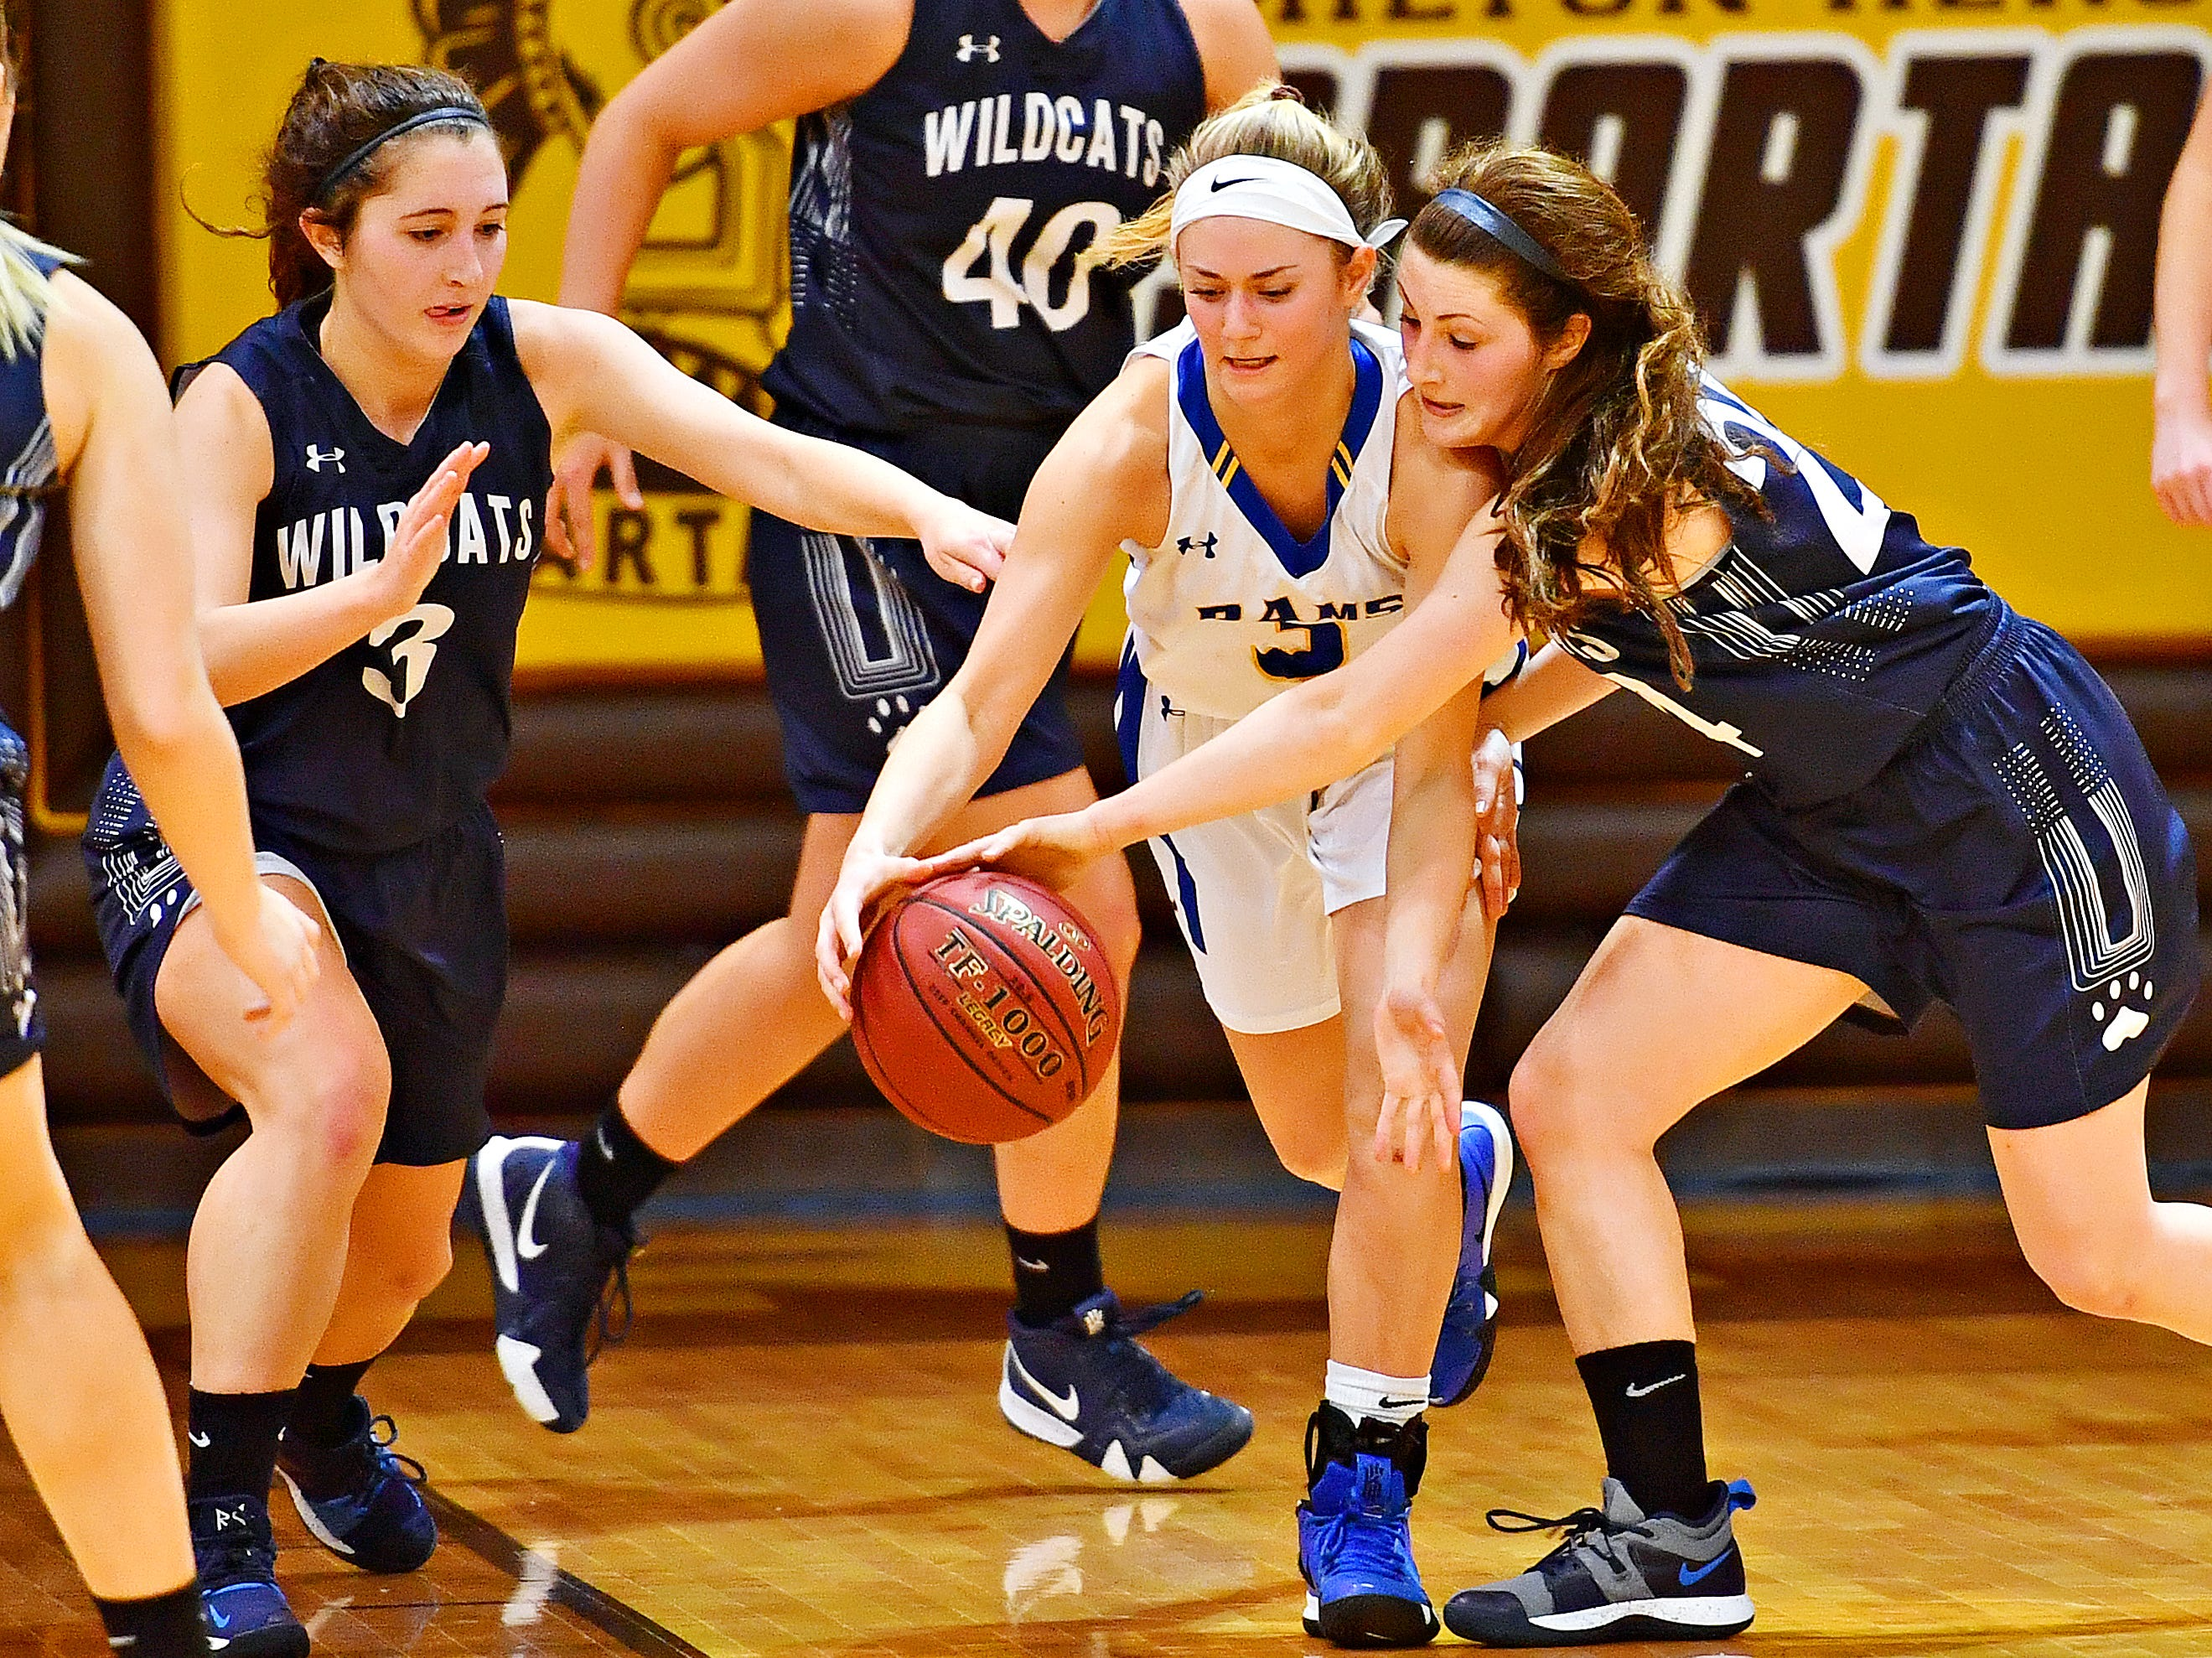 Kennard-Dale's JMegan Halczuk, left, and Mifflinburg's Reagan Griffith battle for control of a loose ball during PIAA Class 4-A girl's basketball second round at Milton Hershey High School in Hershey, Wednesday, March 13, 2019. Mifflinburg would win the game 51-45. Dawn J. Sagert photo